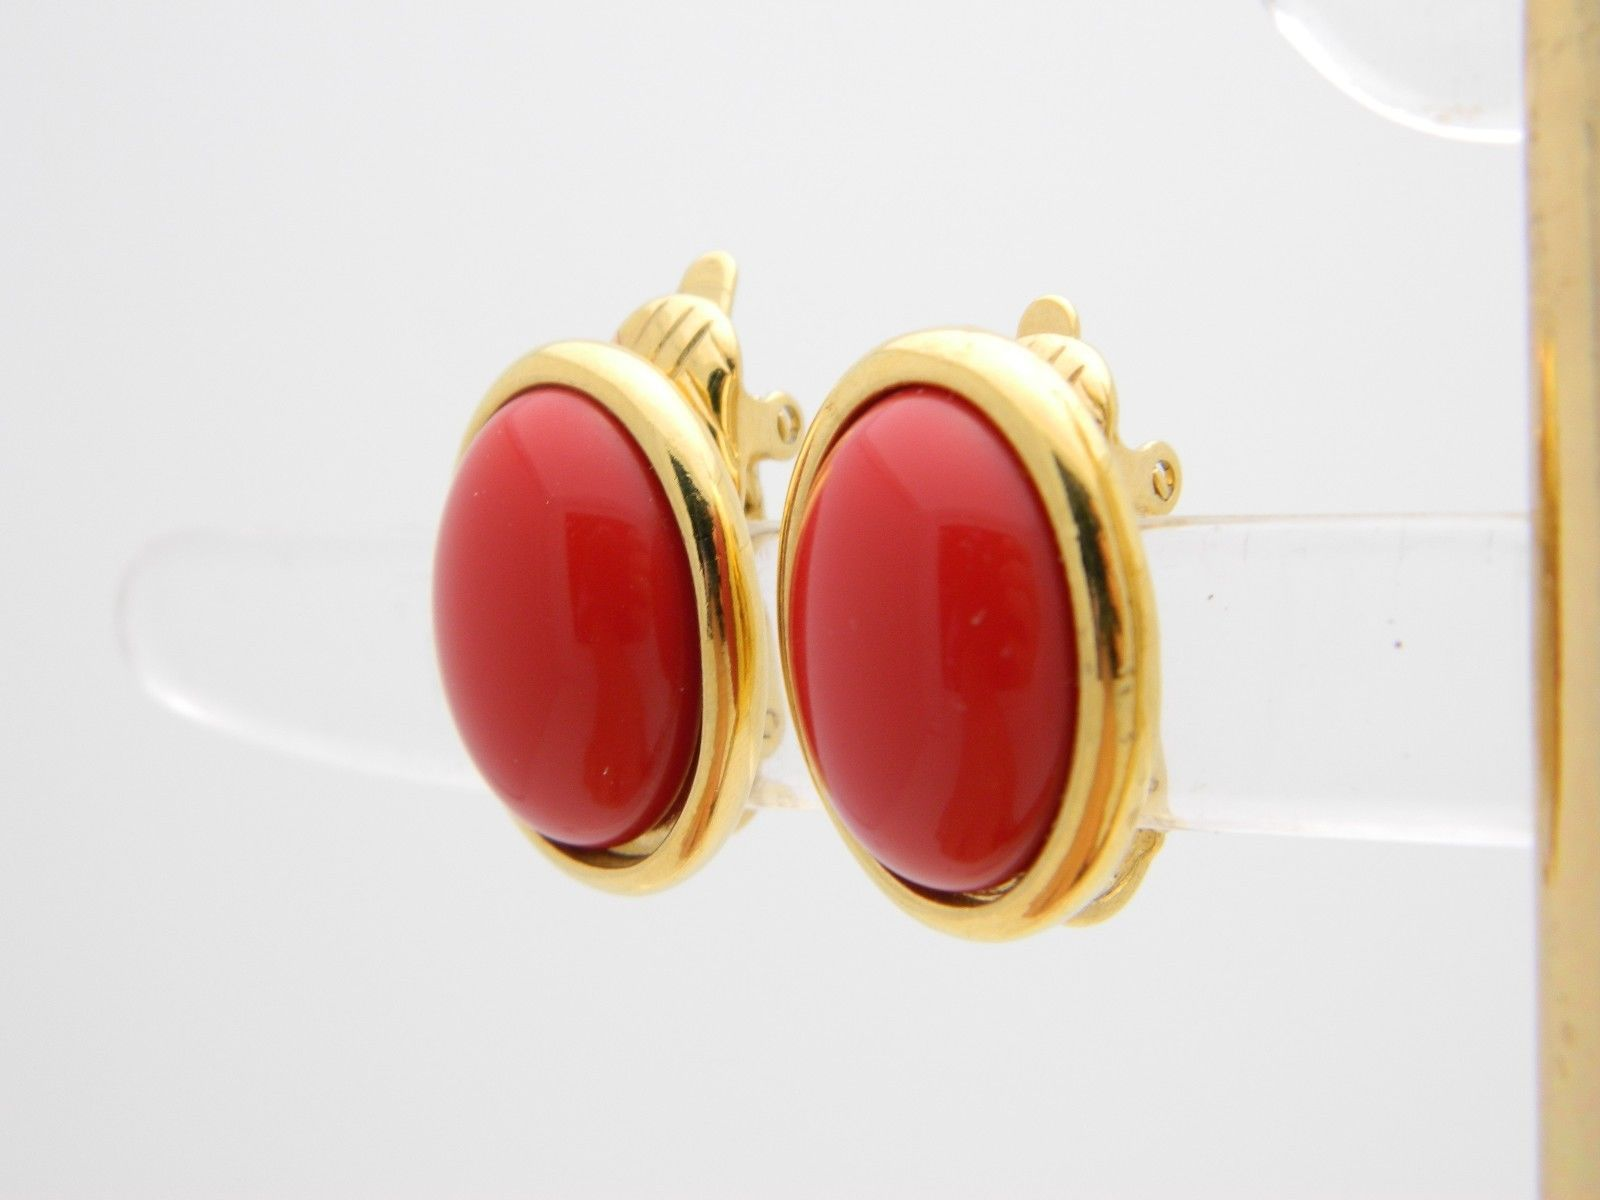 VTG TRIFARI TM Signed Gold Tone Red Lucite Cabochon Clip Earrings